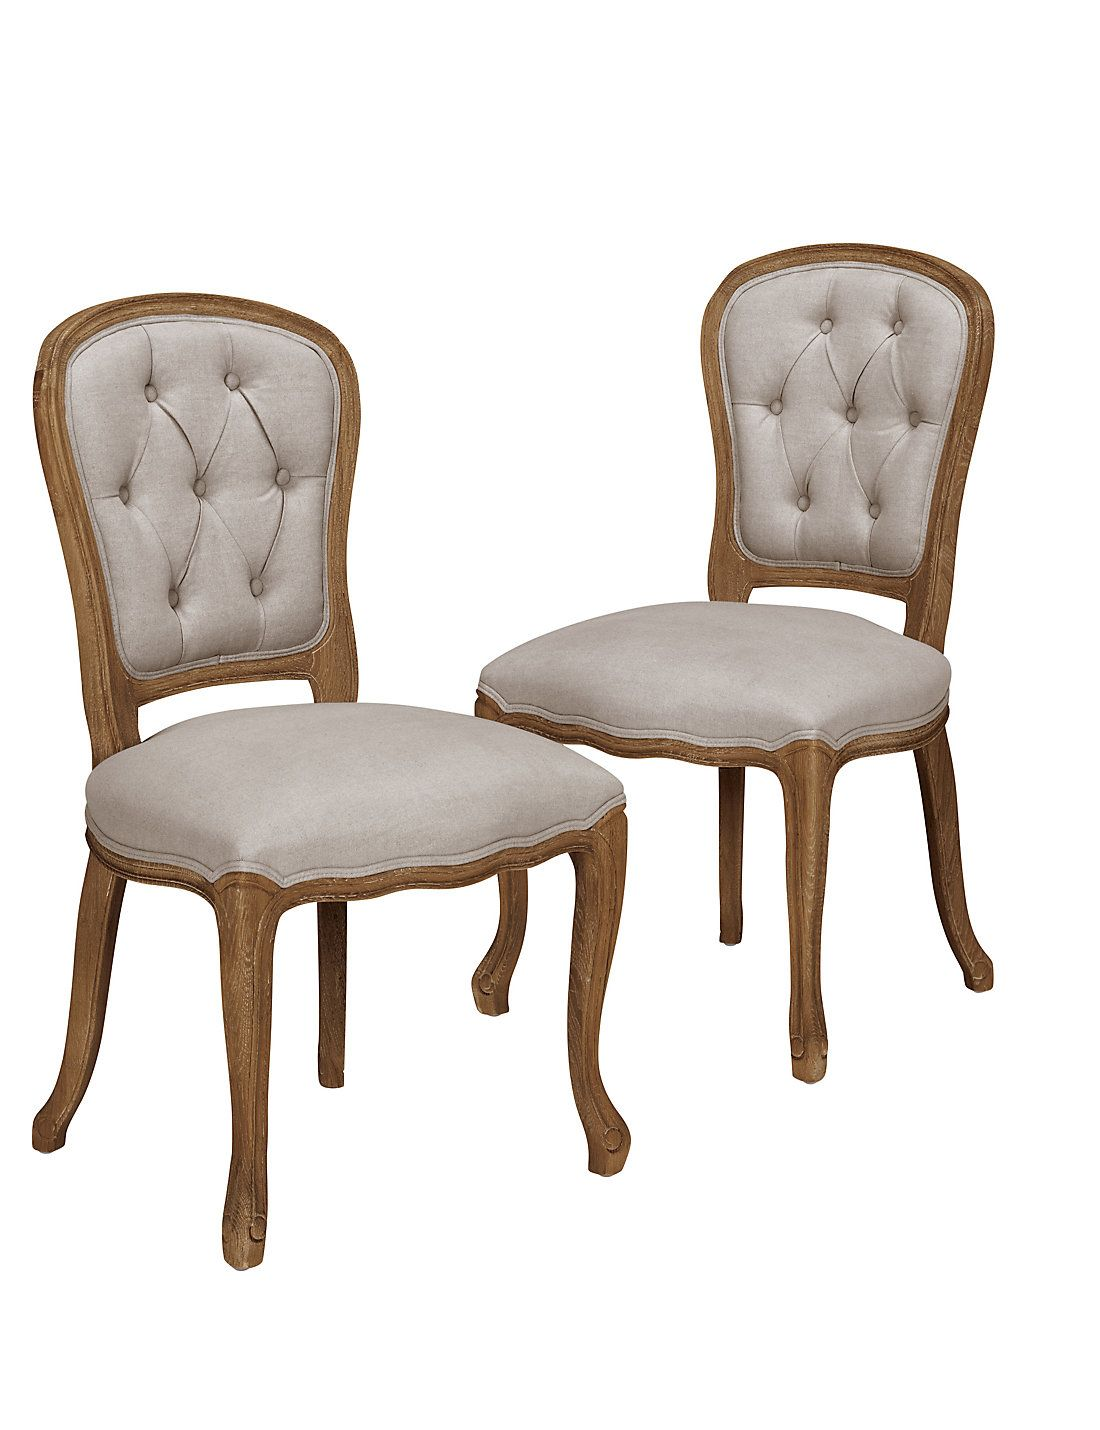 7 Celina Dining Chairs - Marks & Spencer  Dining chairs